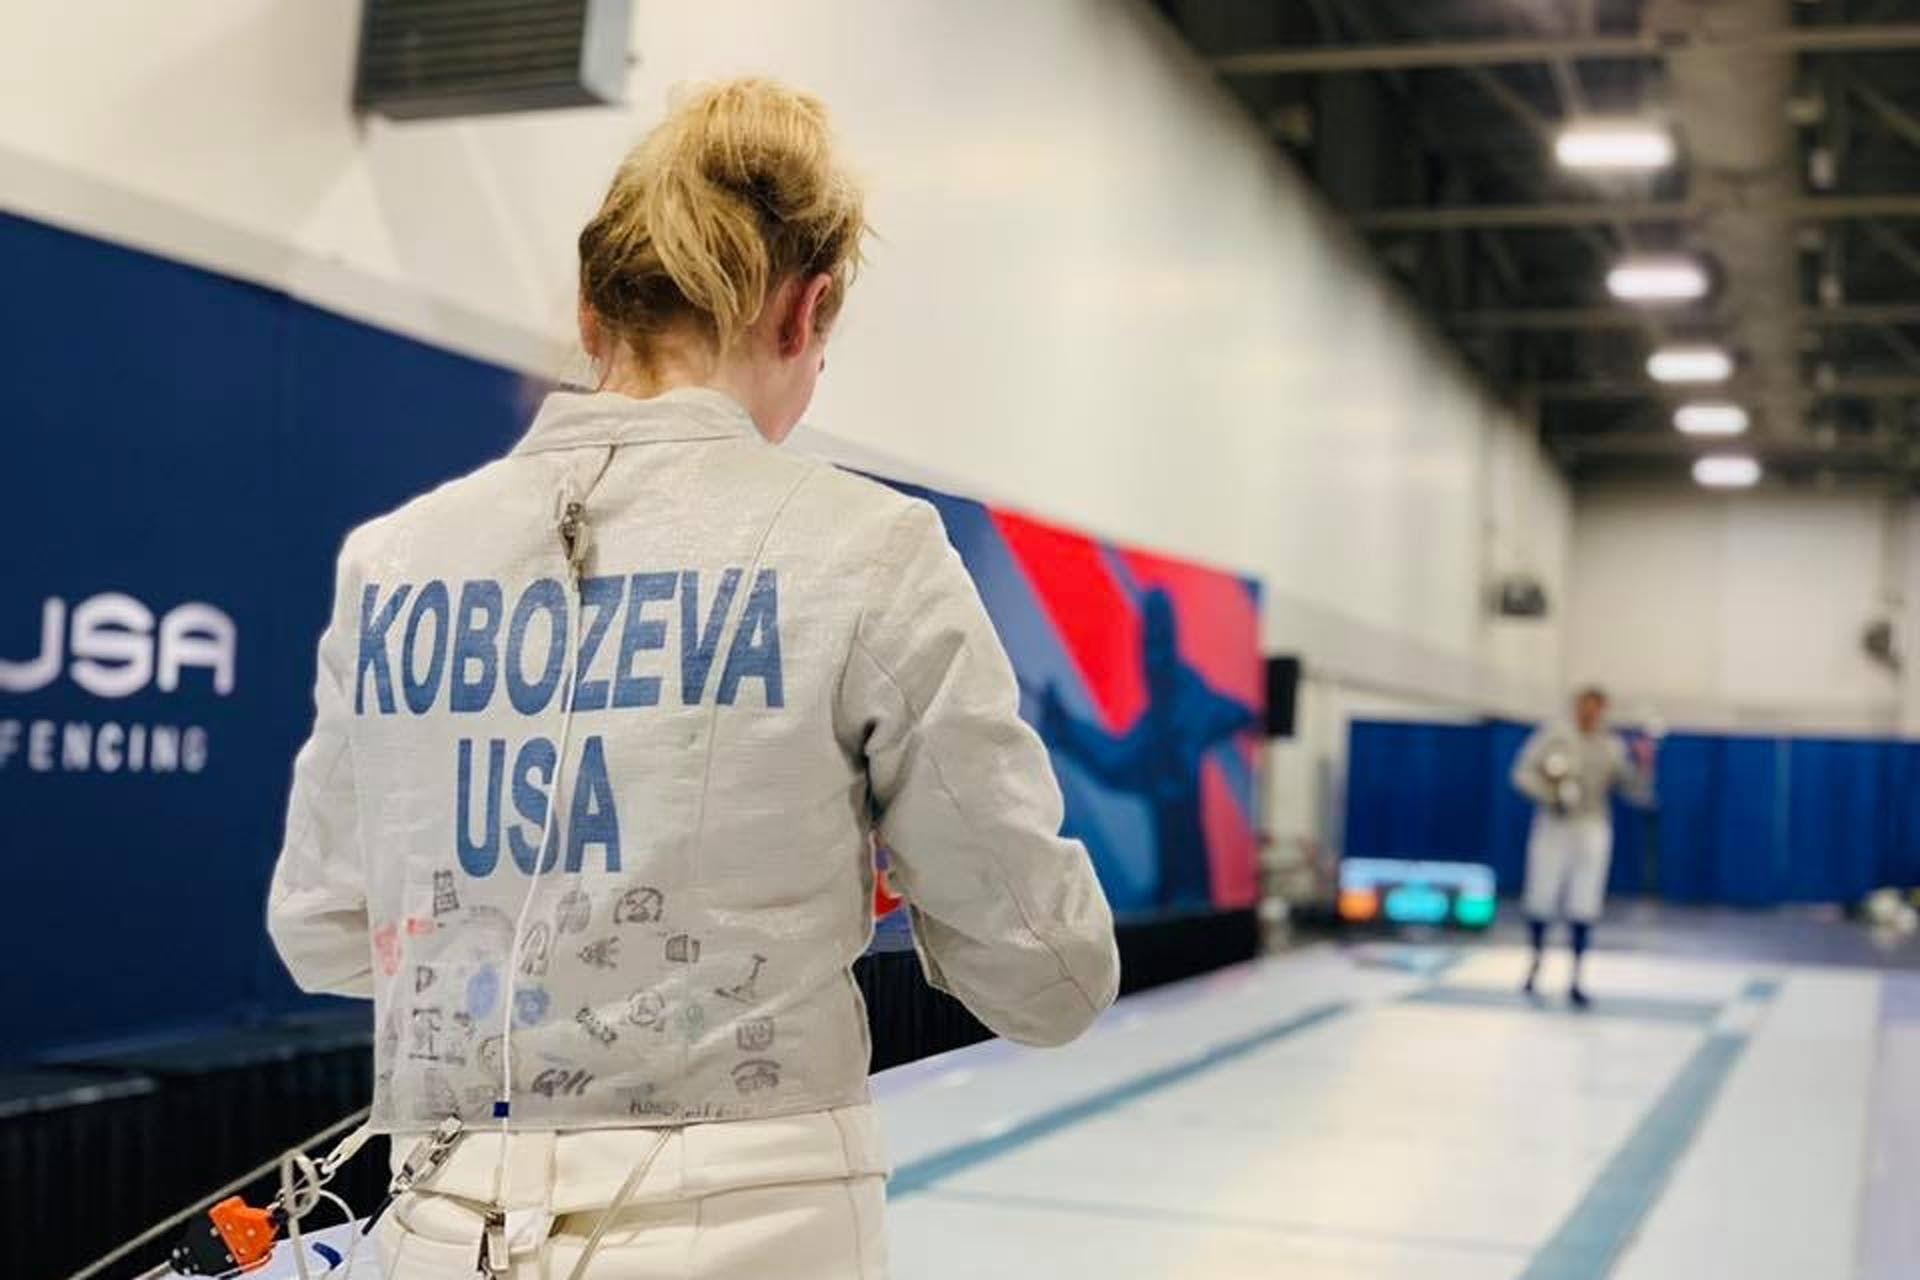 Toma Kobozeva wins silver at 2019 North American Cup in Salt Lake City, UT